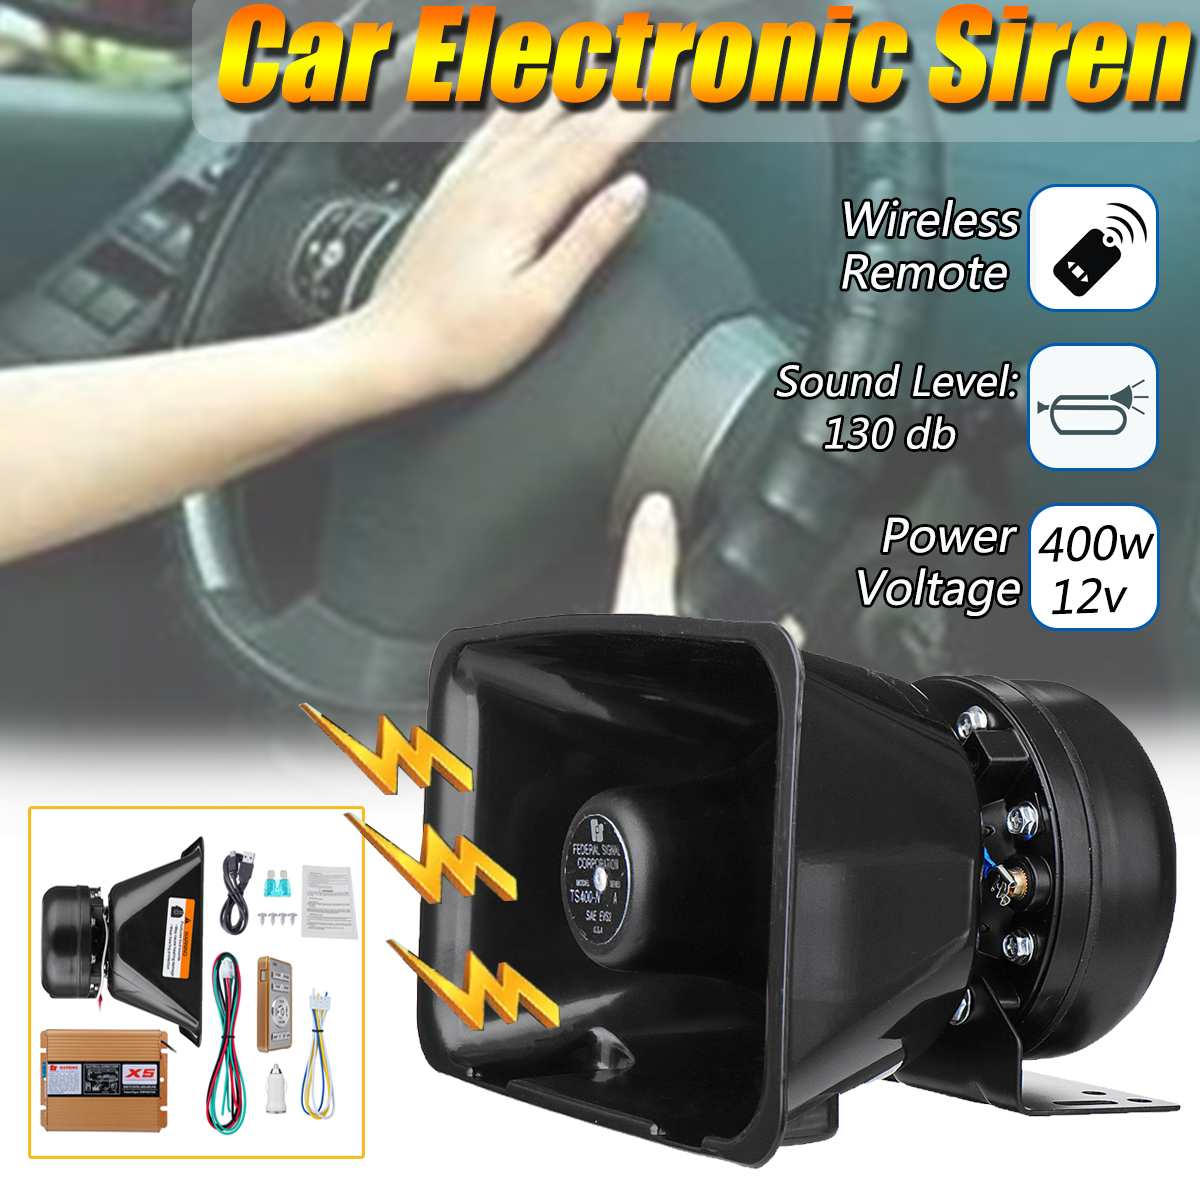 18 Sounds 400w 12v Motor Auto Car Vehicle Truck Wireless Remote Control Siren Amplifier Alarm Horn Electronic Siren Loudspeaker18 Sounds 400w 12v Motor Auto Car Vehicle Truck Wireless Remote Control Siren Amplifier Alarm Horn Electronic Siren Loudspeaker